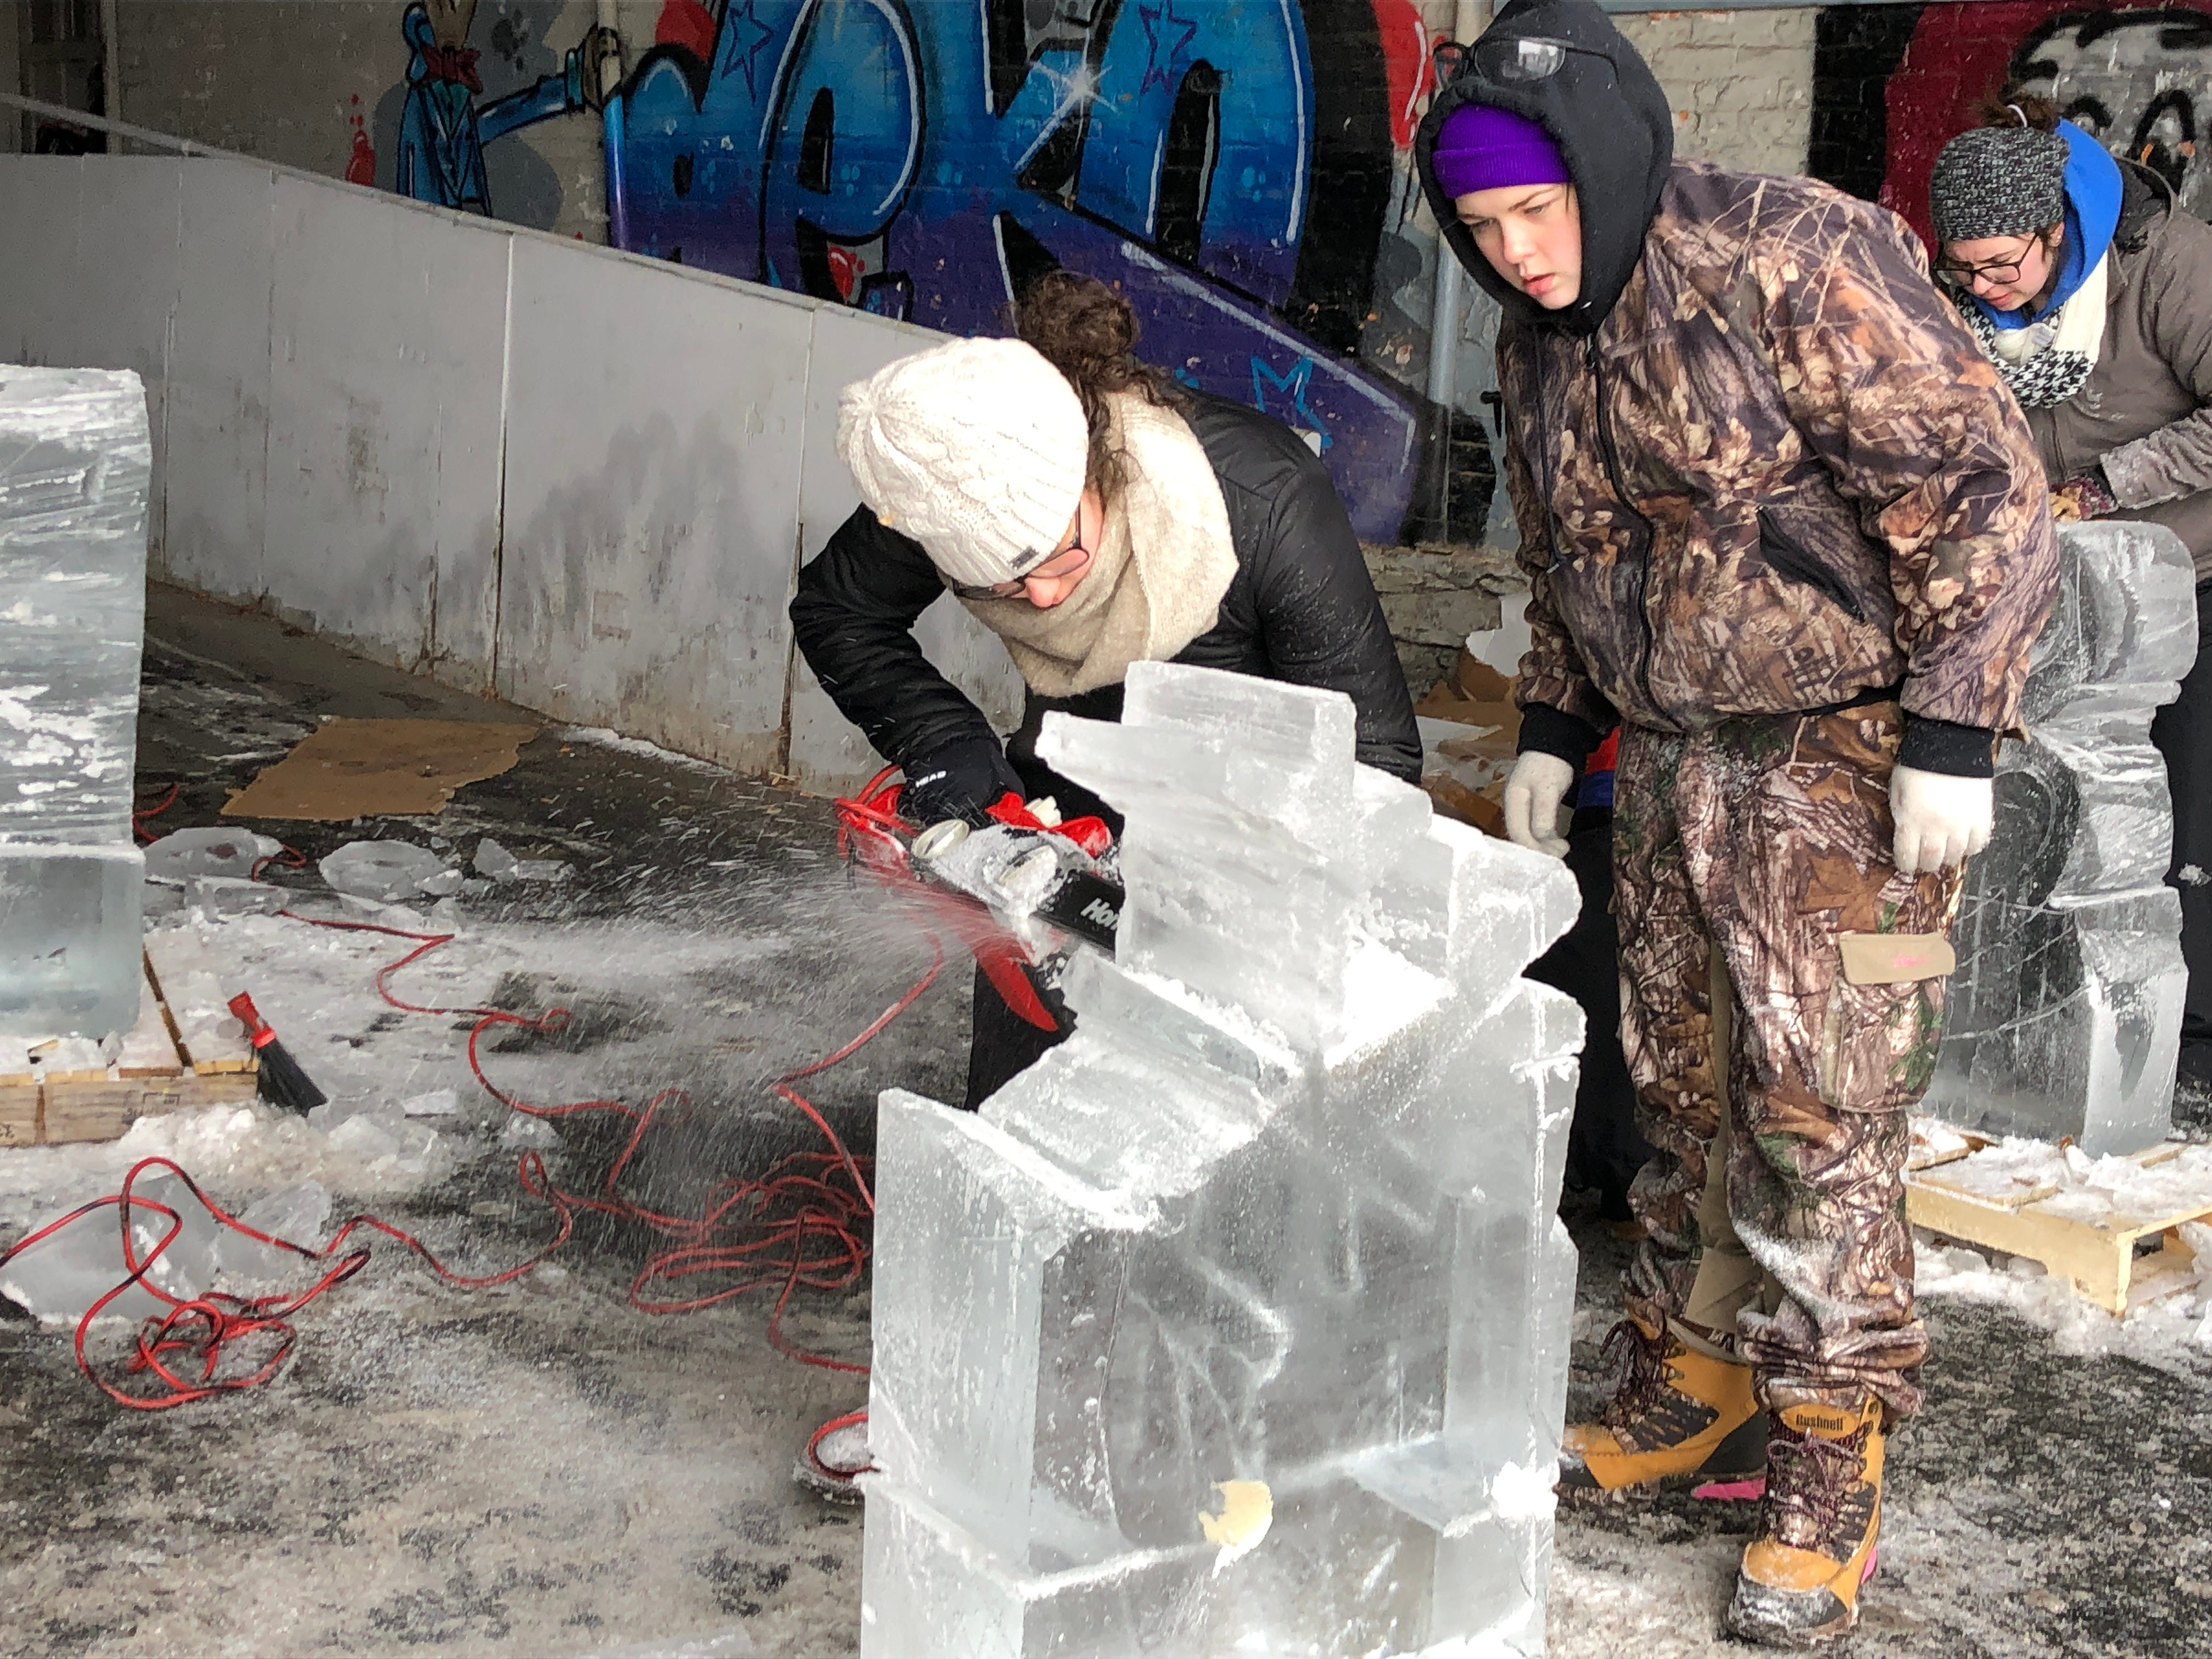 Corina Henry (left) and Hanna Koehler are back to work on their snowflake after the unfortunate mishap.